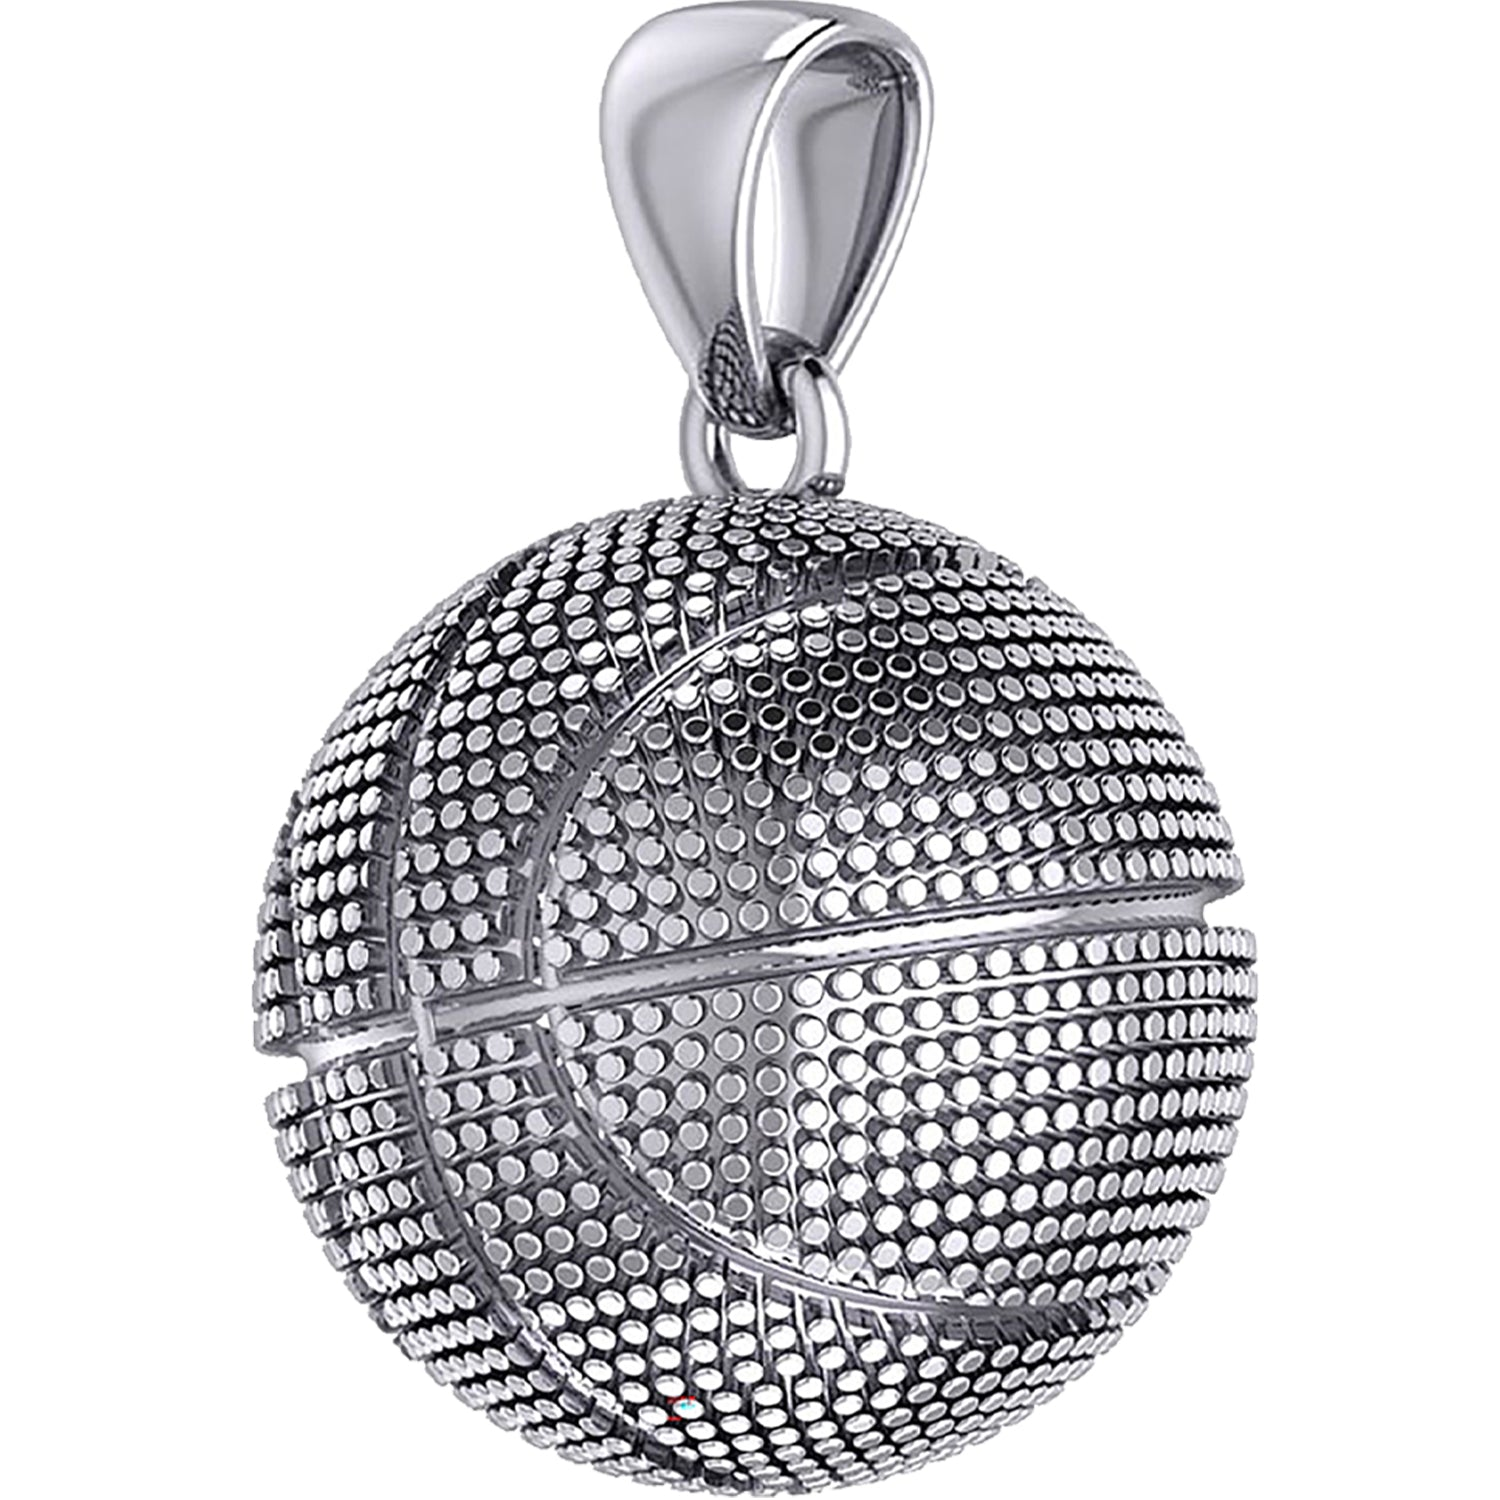 Basketball Necklace In Silver For Men - Pendant Only